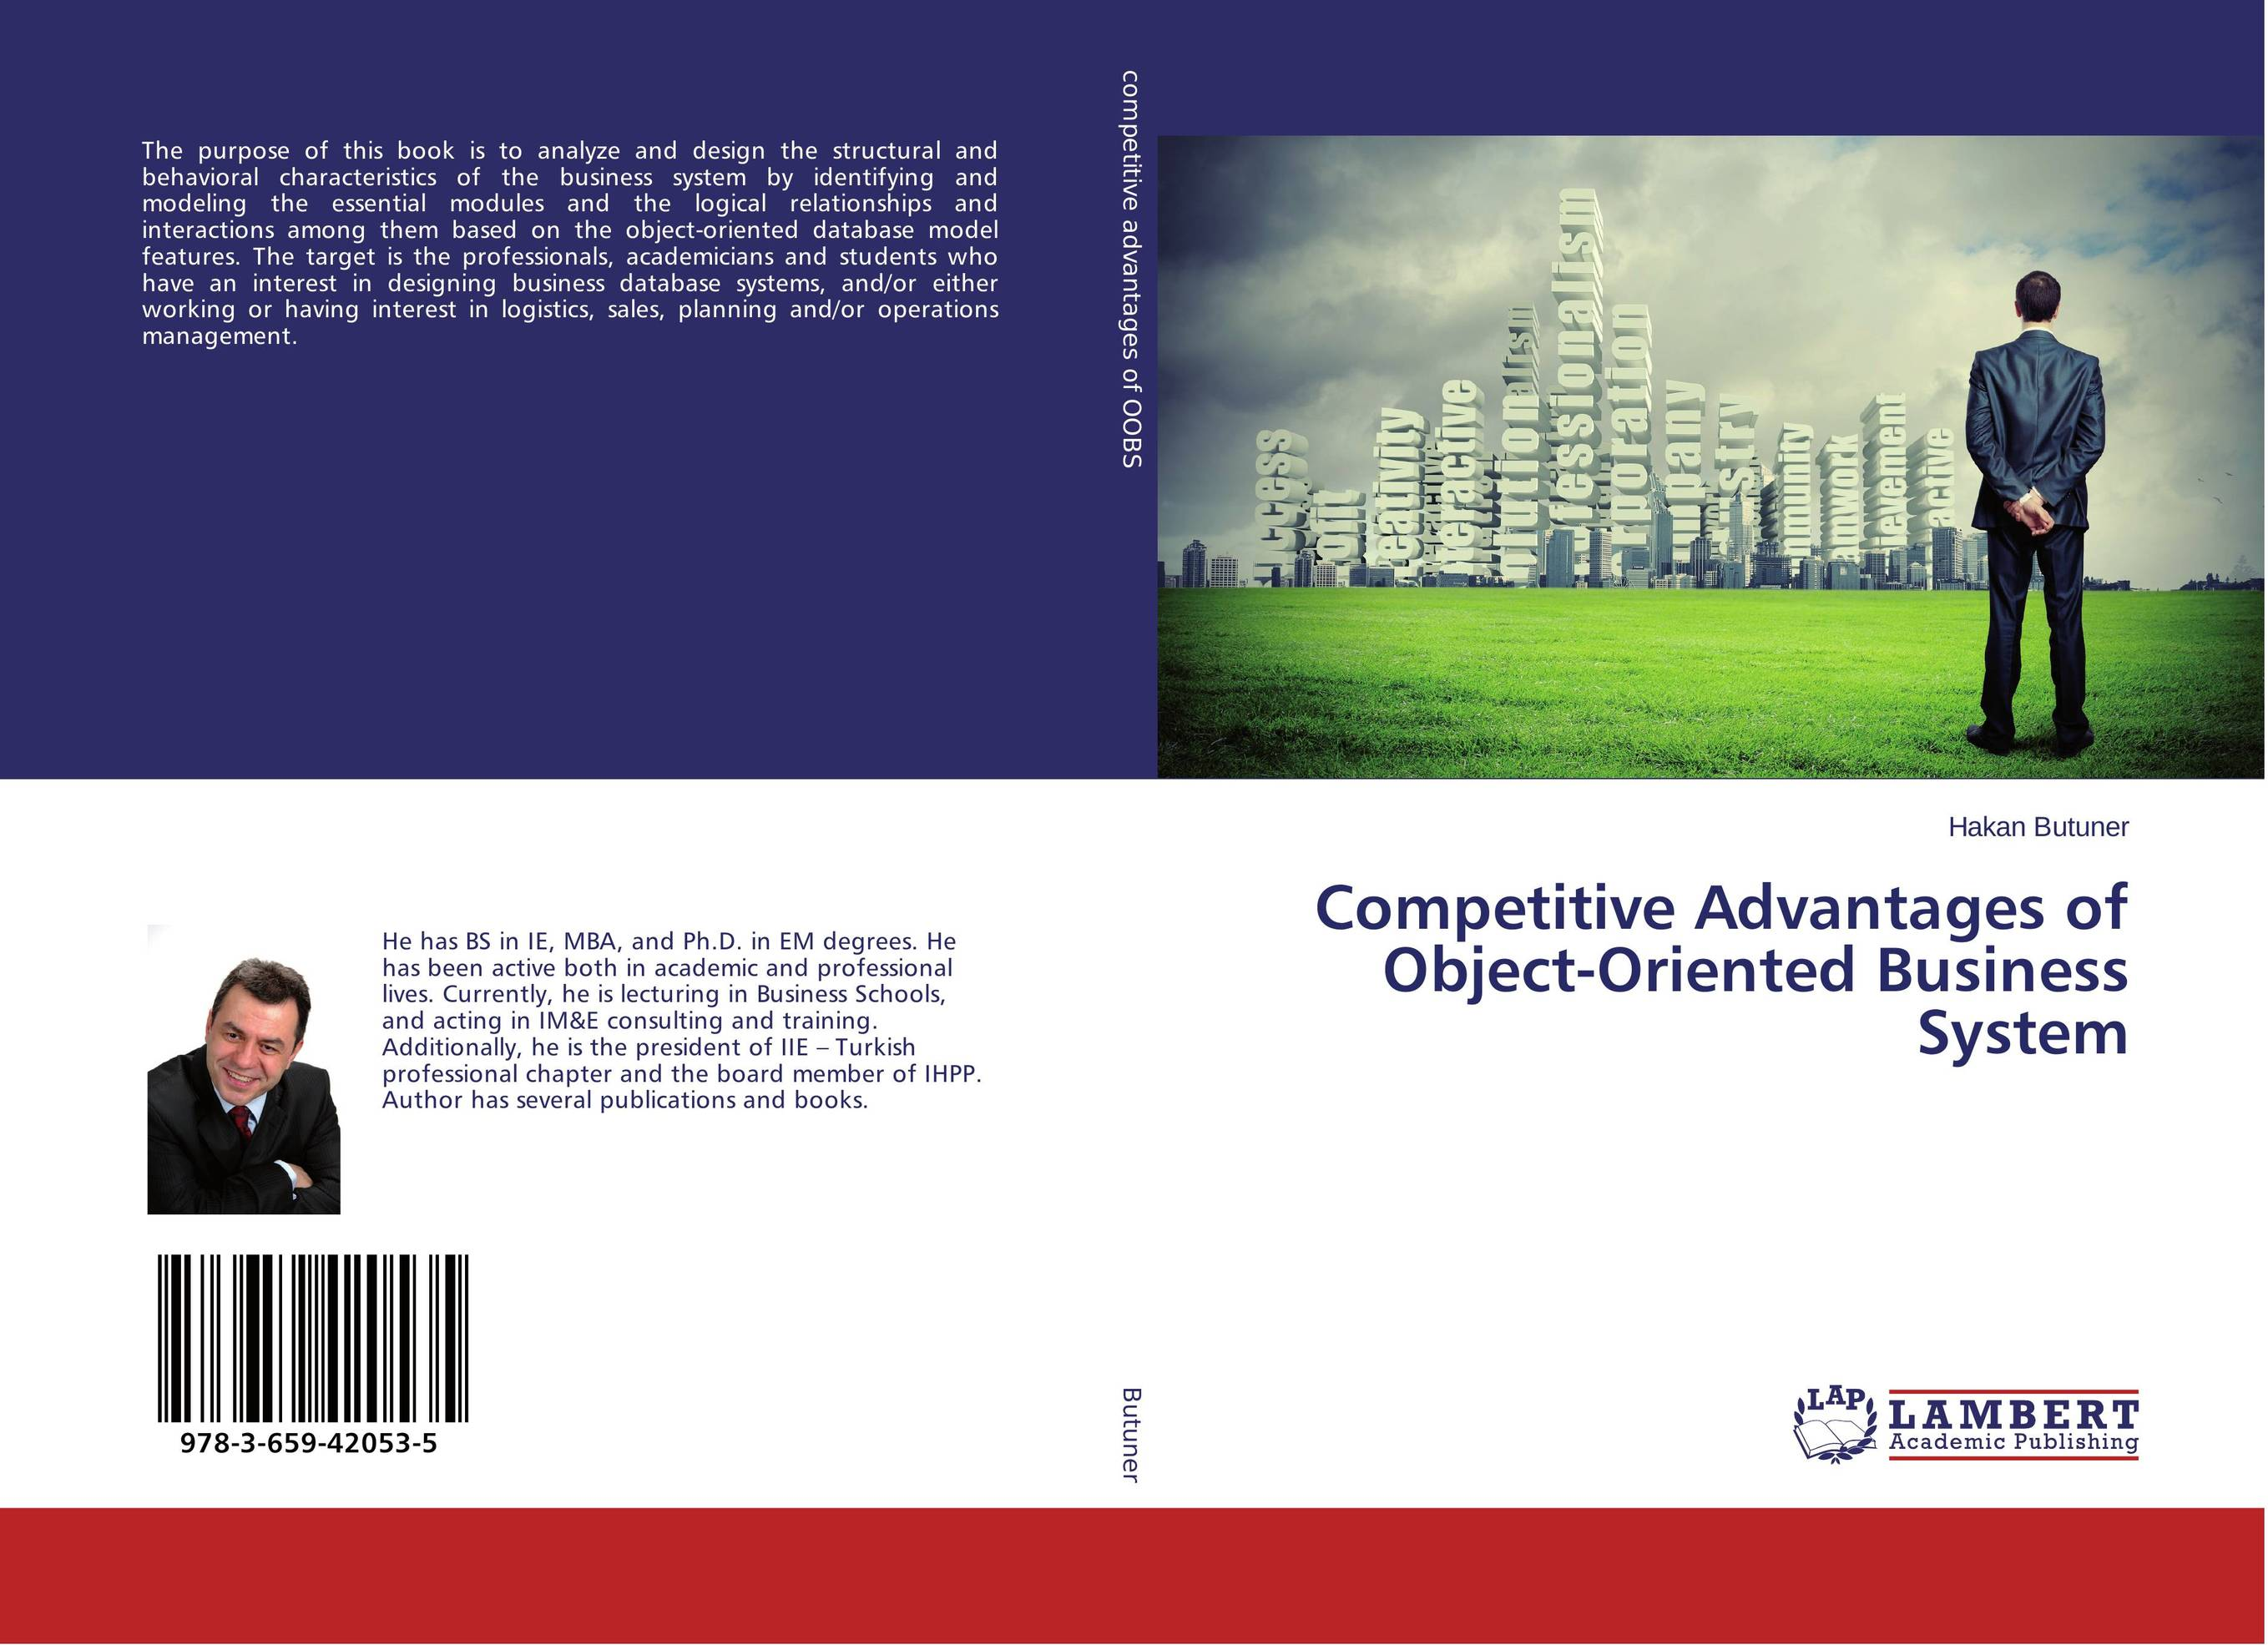 Competitive Advantages of Object-Oriented Business System database modeling and design